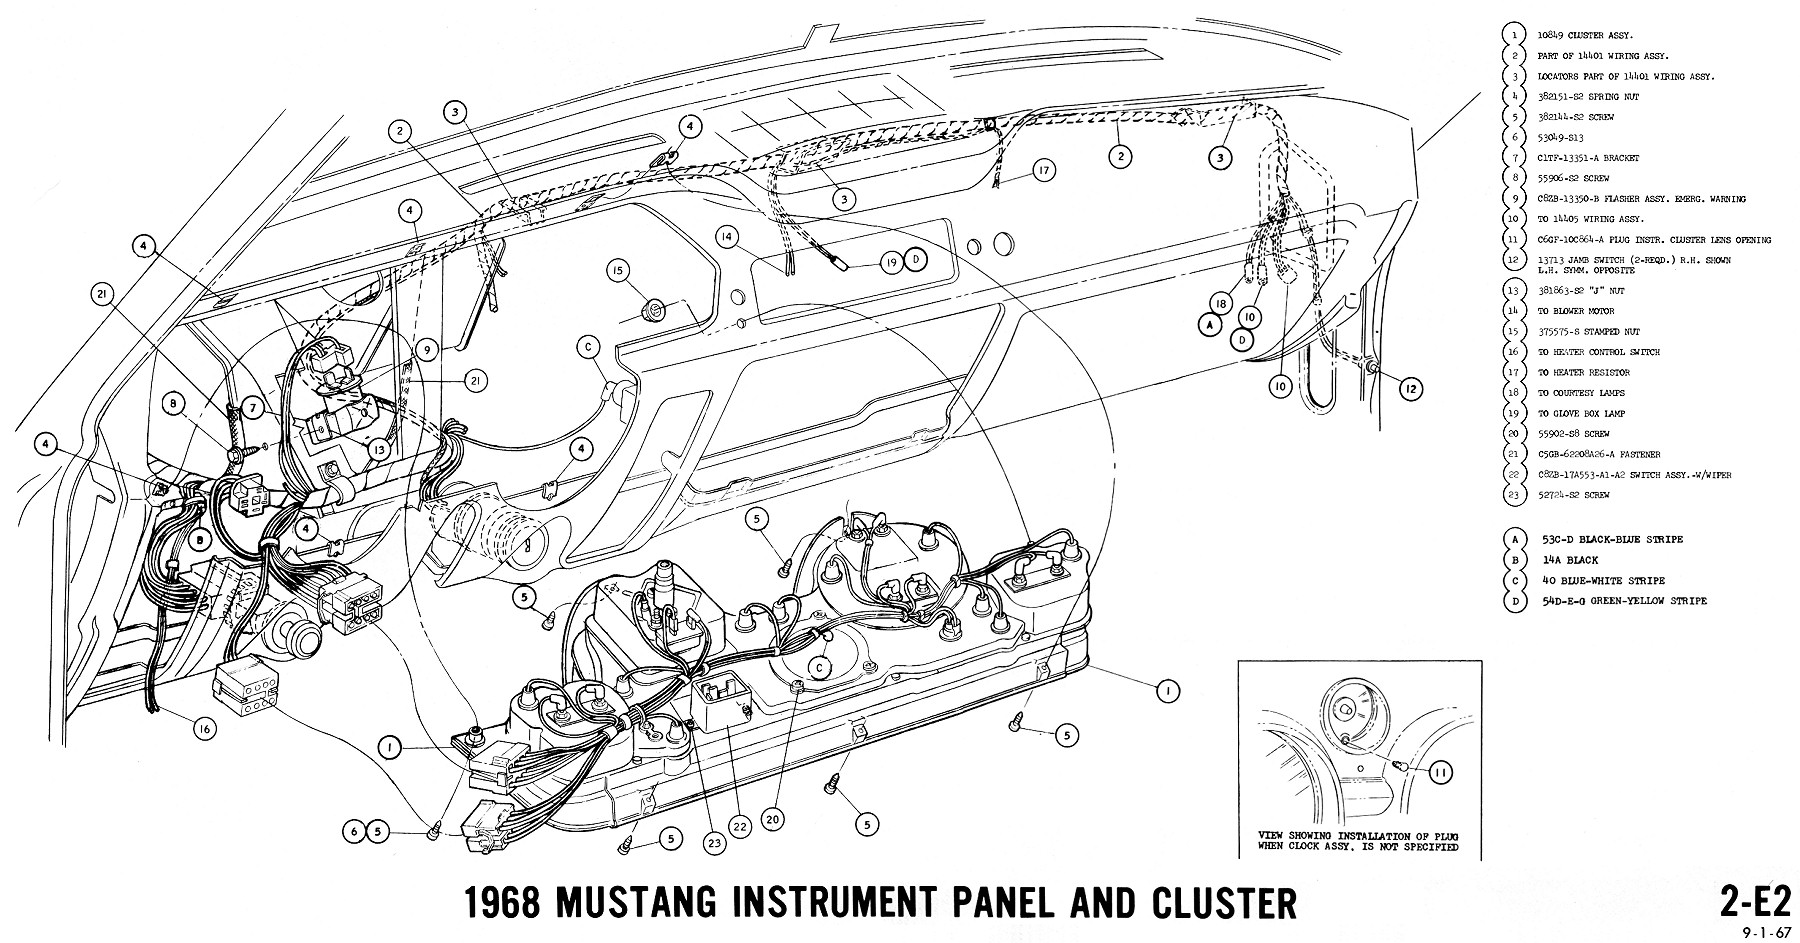 1968 mustang wiring diagram instruments 2 1968 mustang wiring diagrams and vacuum schematics average joe 1969 mustang alternator wiring diagram at n-0.co